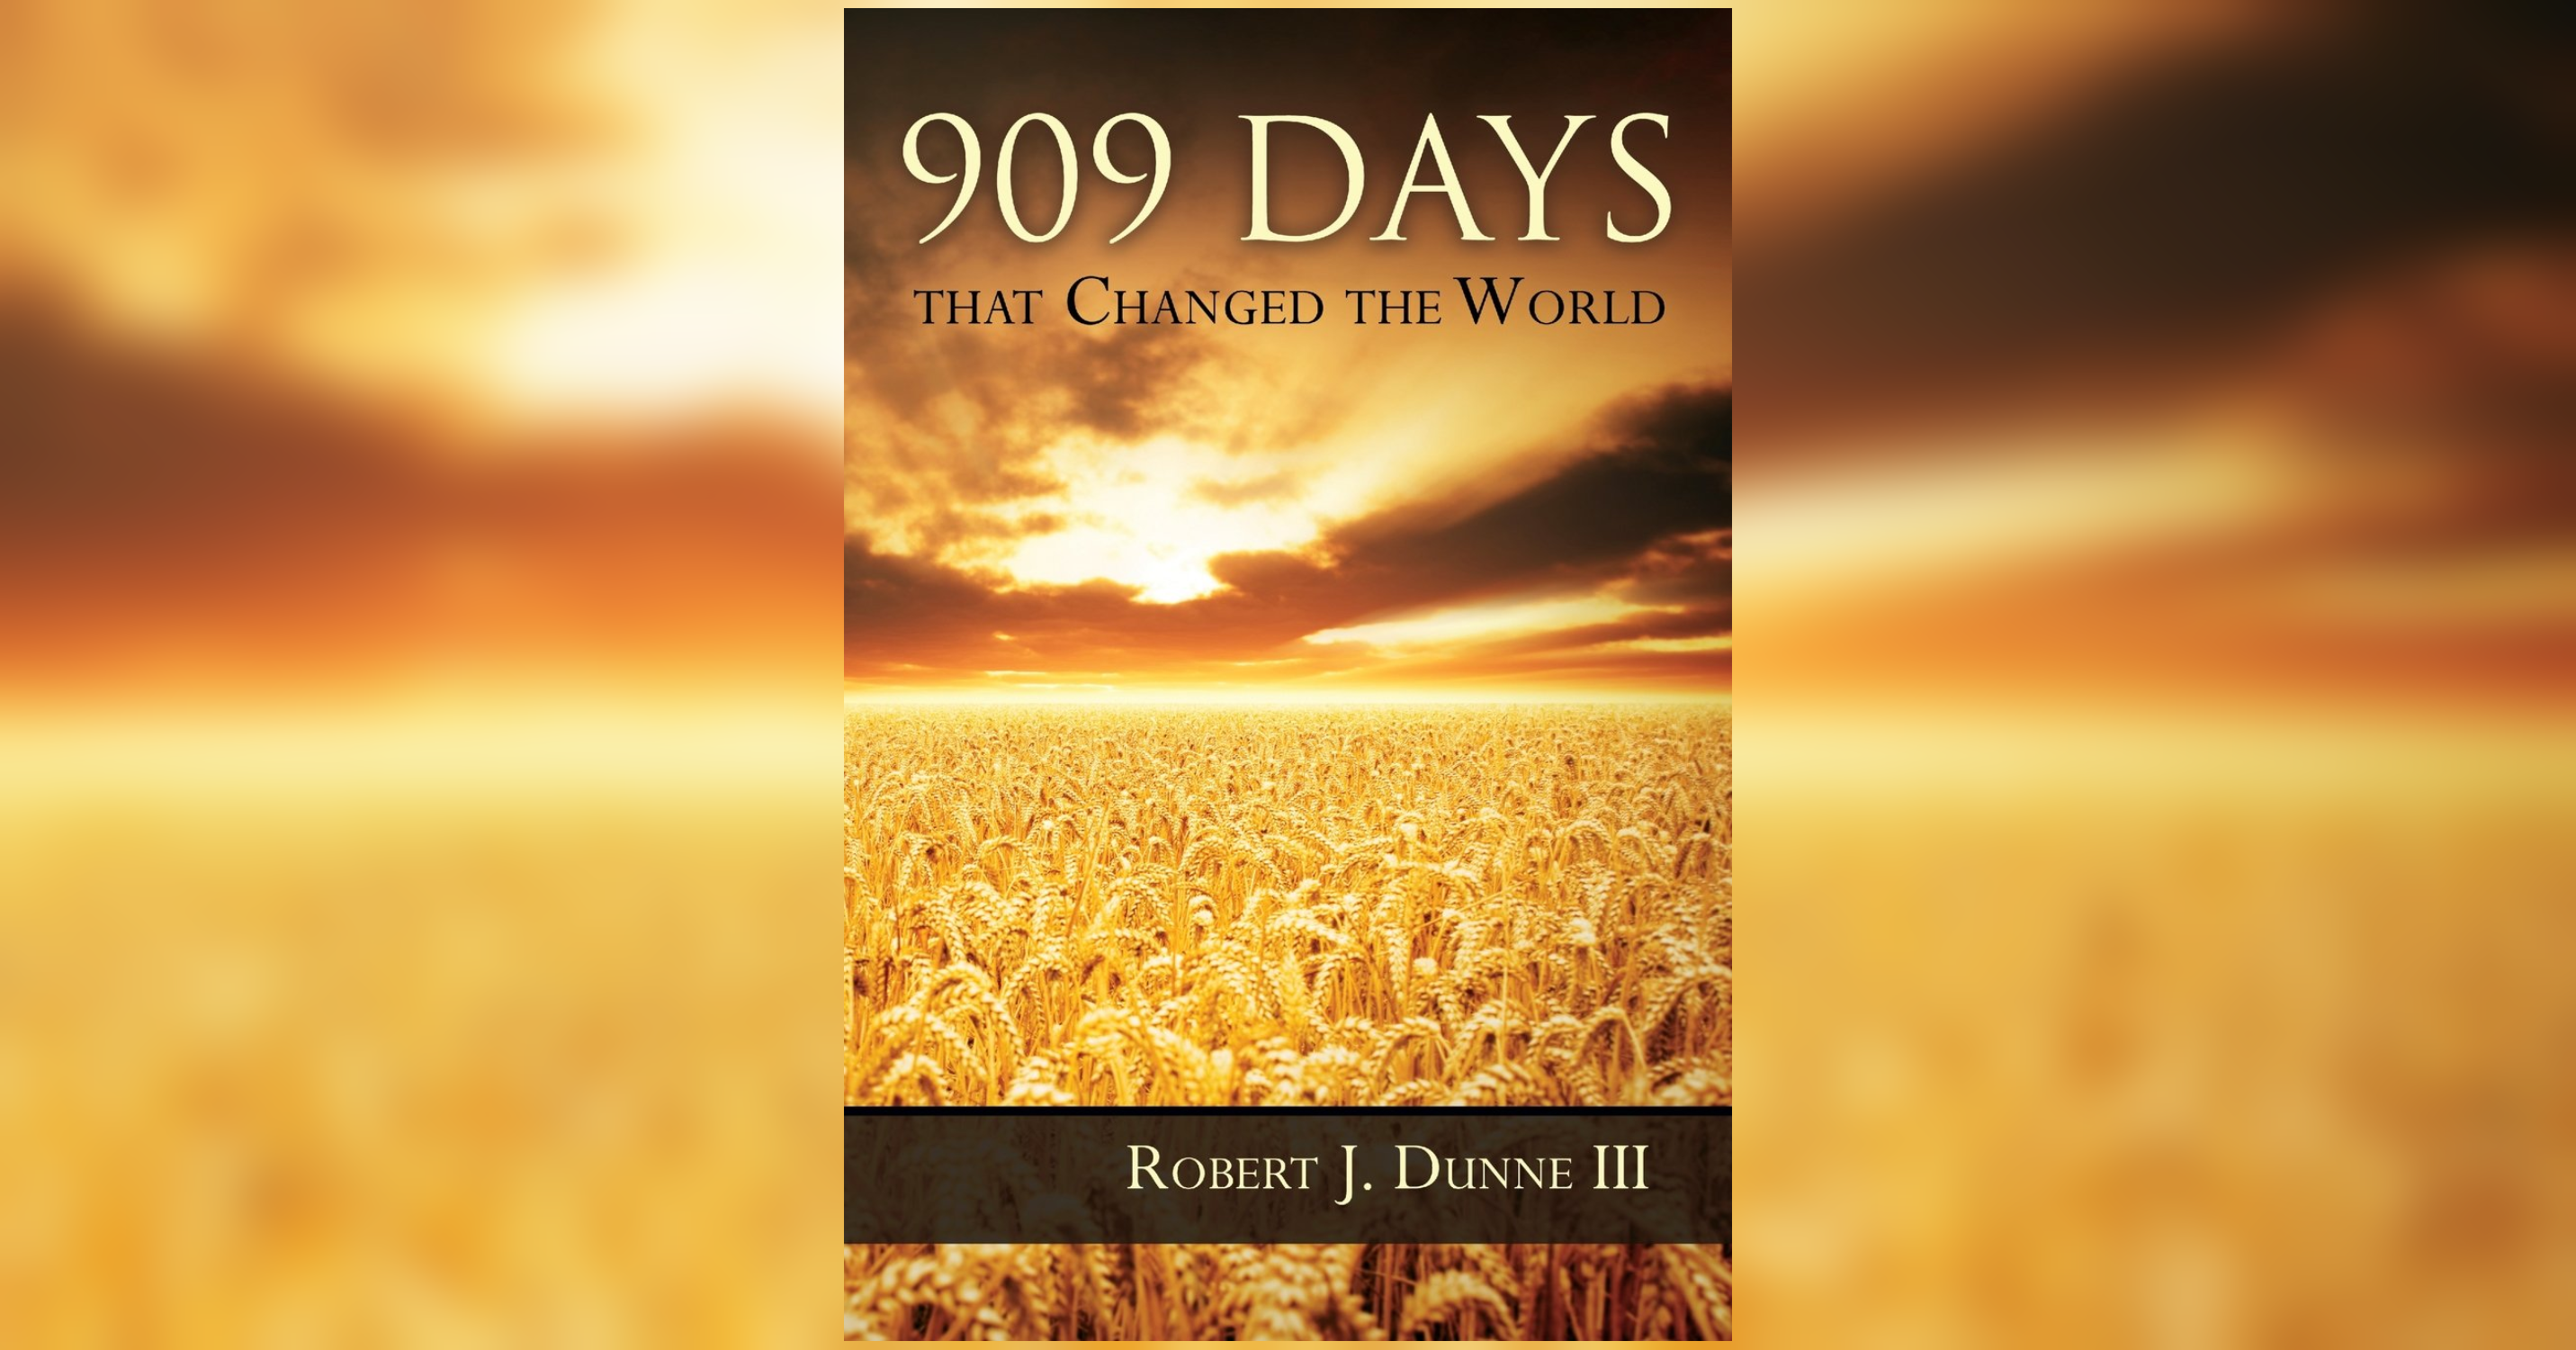 909 Days That Changed the World: Jesus Chooses Another Unlikely Disciple